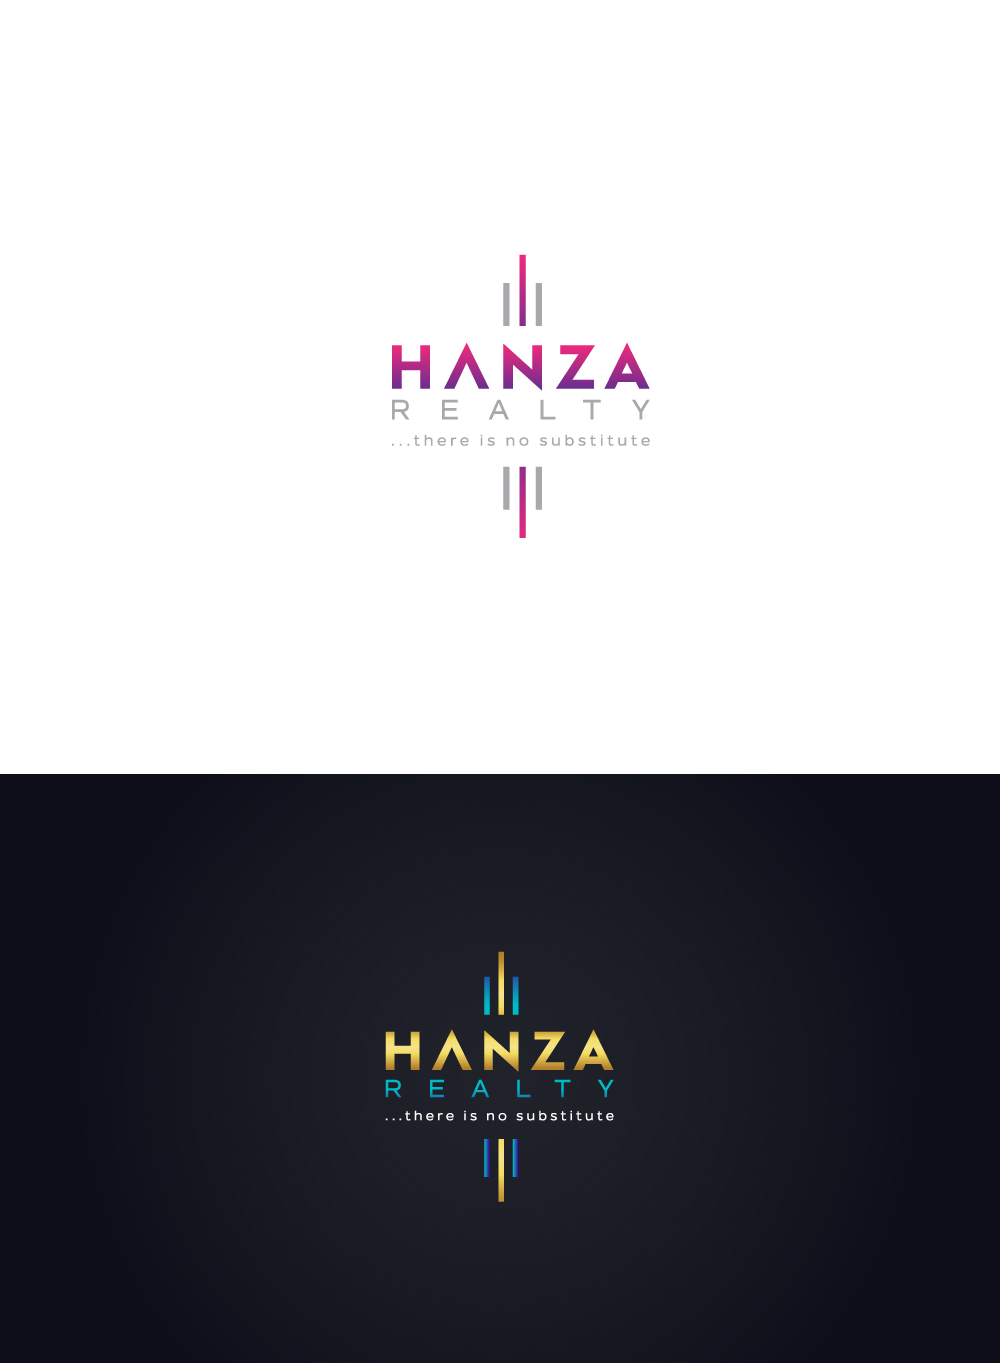 Logo Design by Tauhid Shaikh - Entry No. 381 in the Logo Design Contest Logo Design for Hanza Realty.